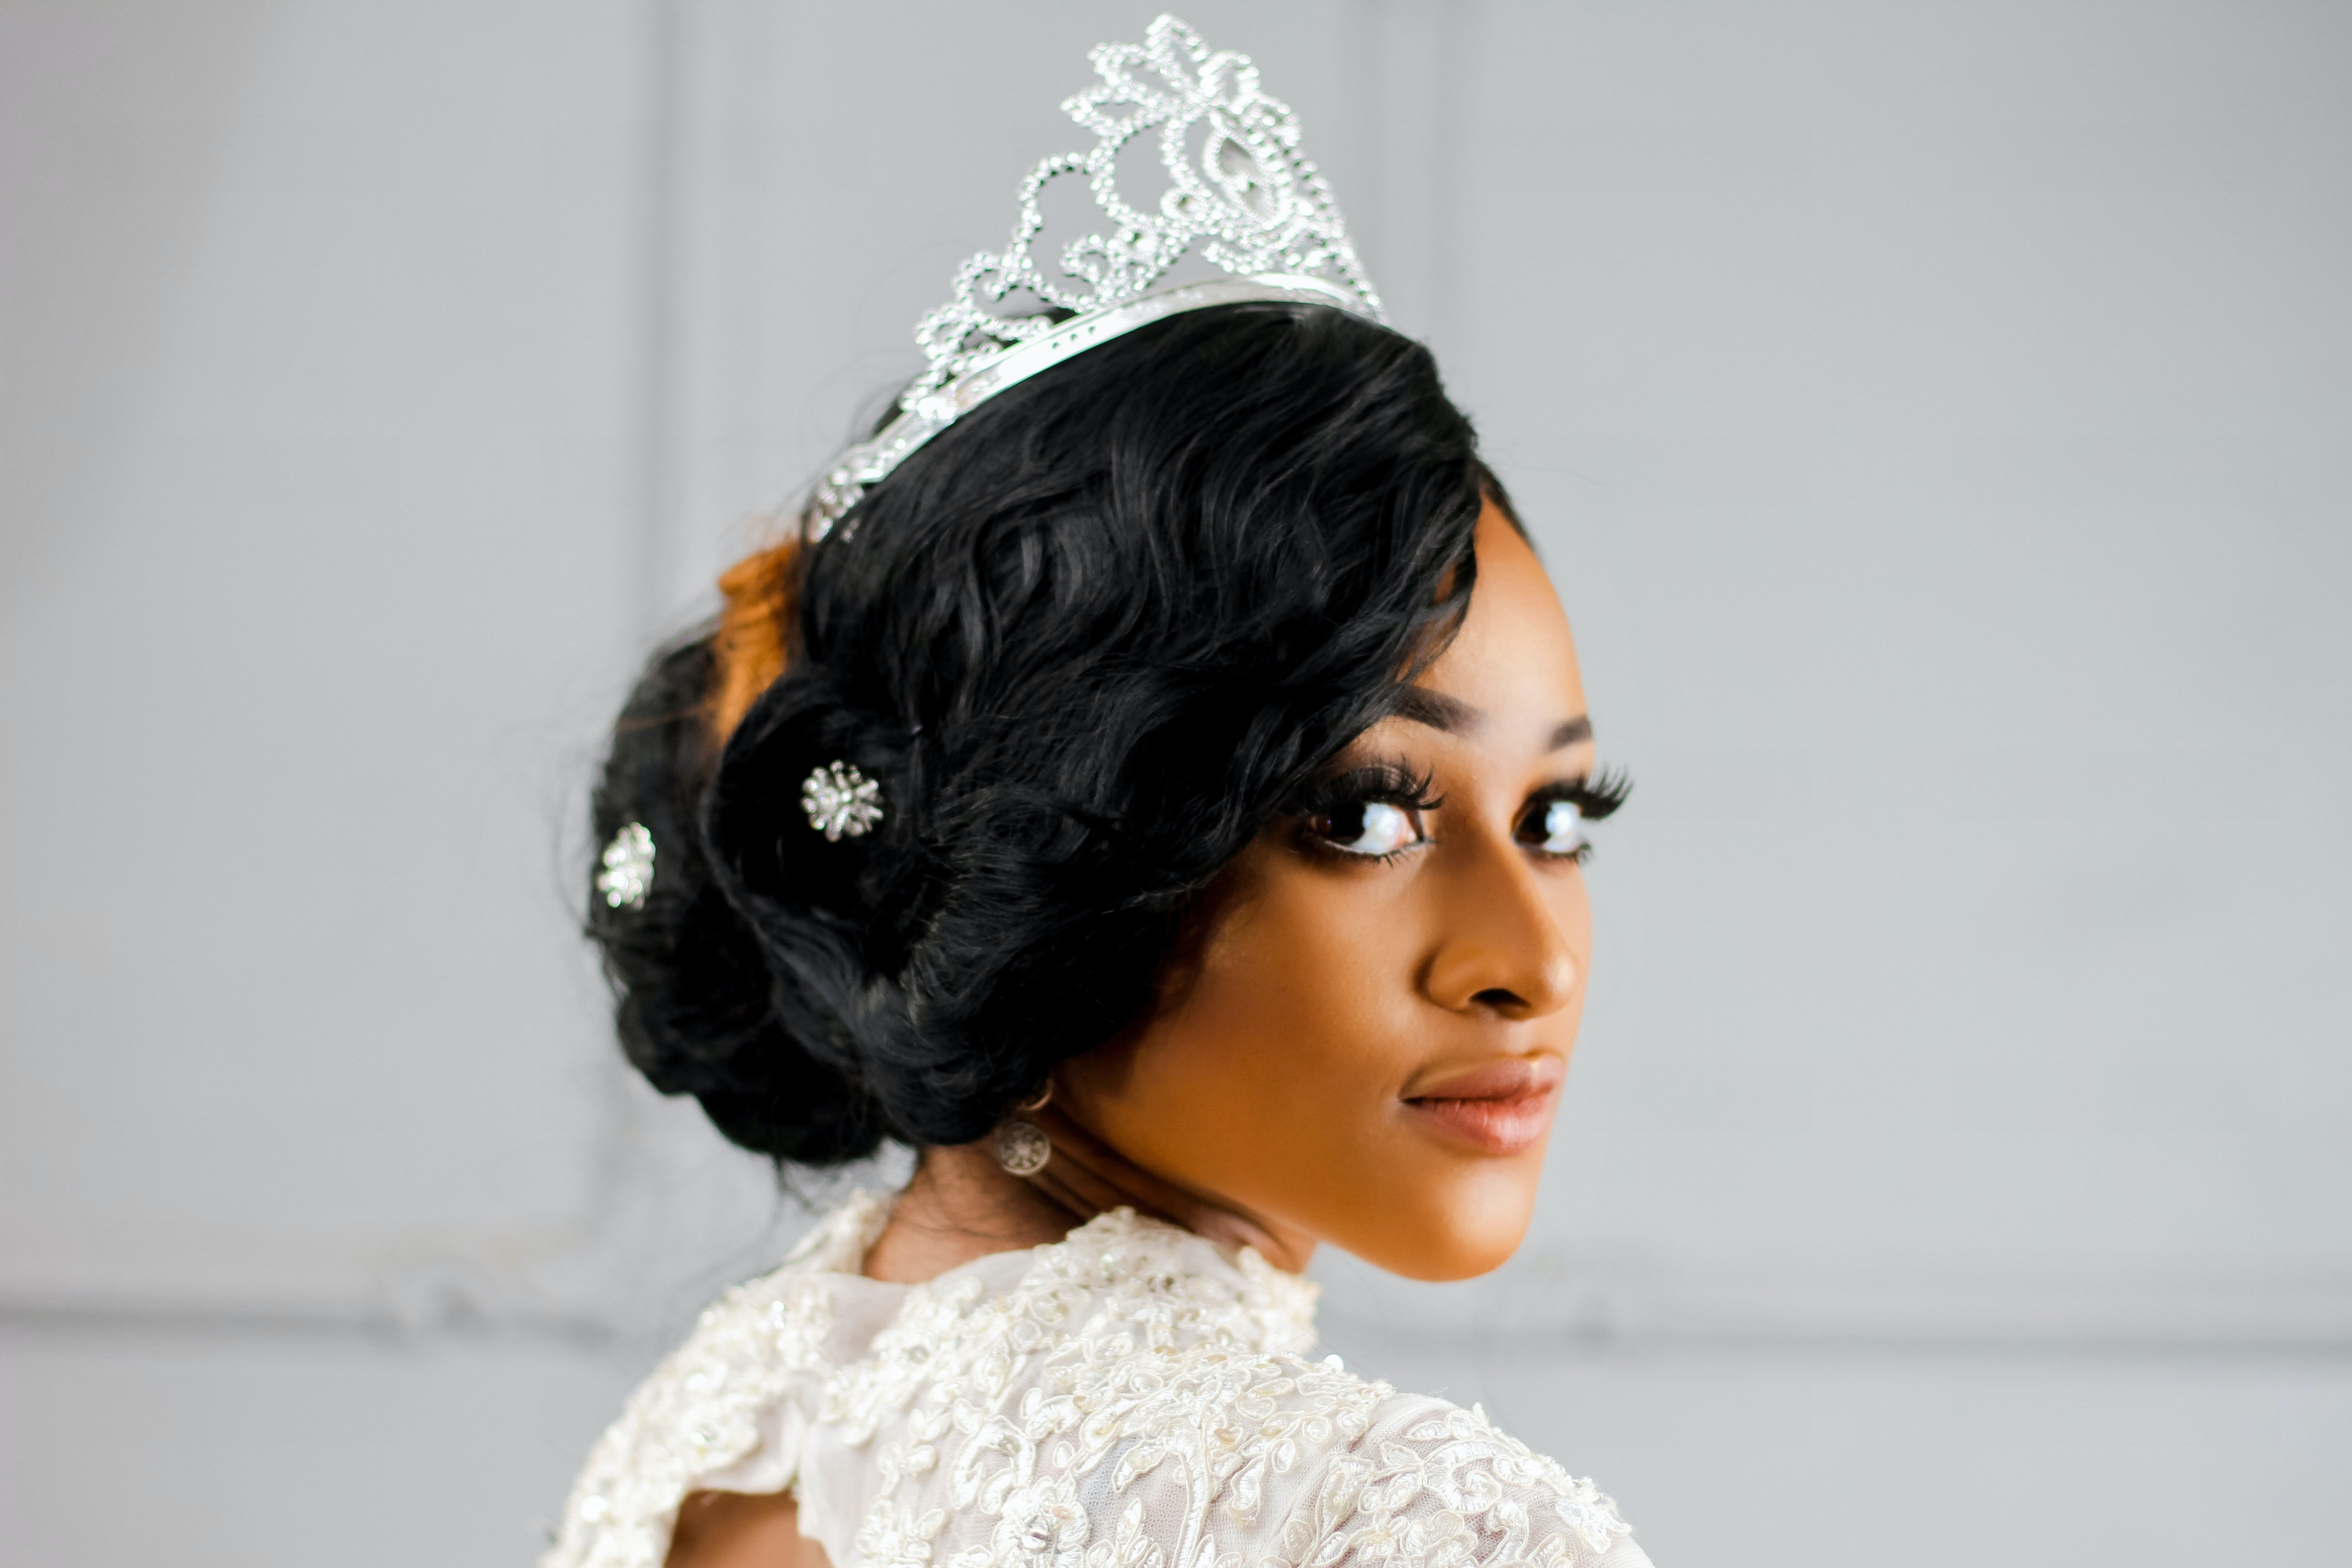 Pictured - A woman wearing a sliver colored crown | Source: Pexels